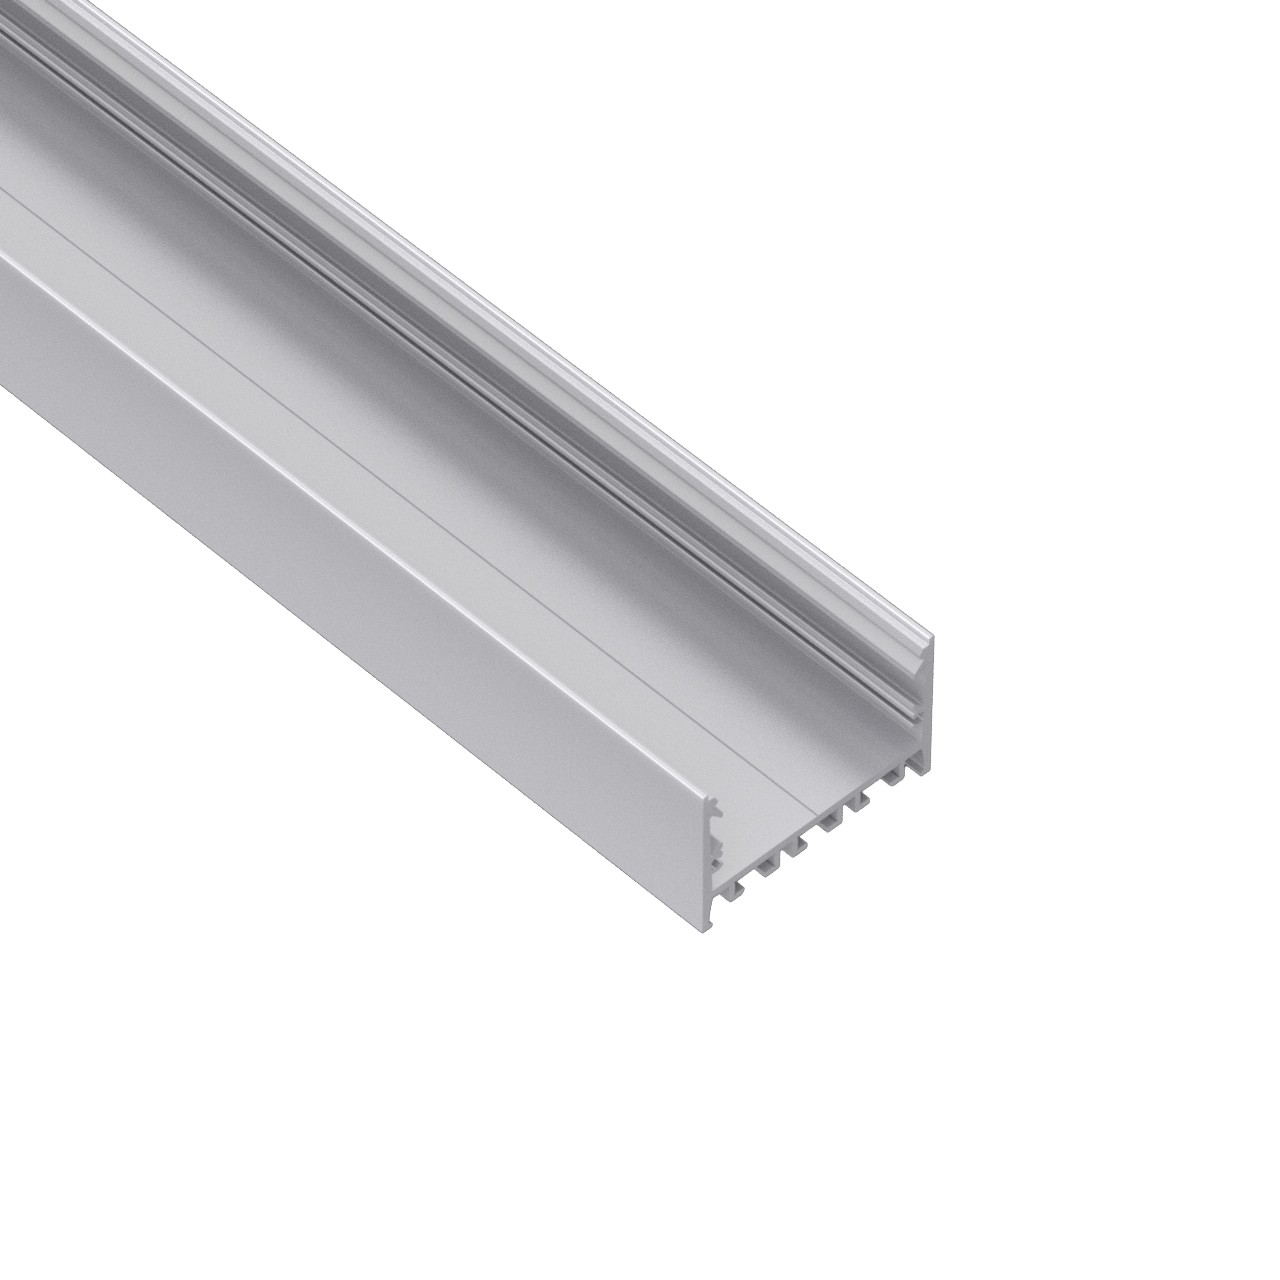 EU60 60mm wide surface & suspended square led profile 60x47.5mm